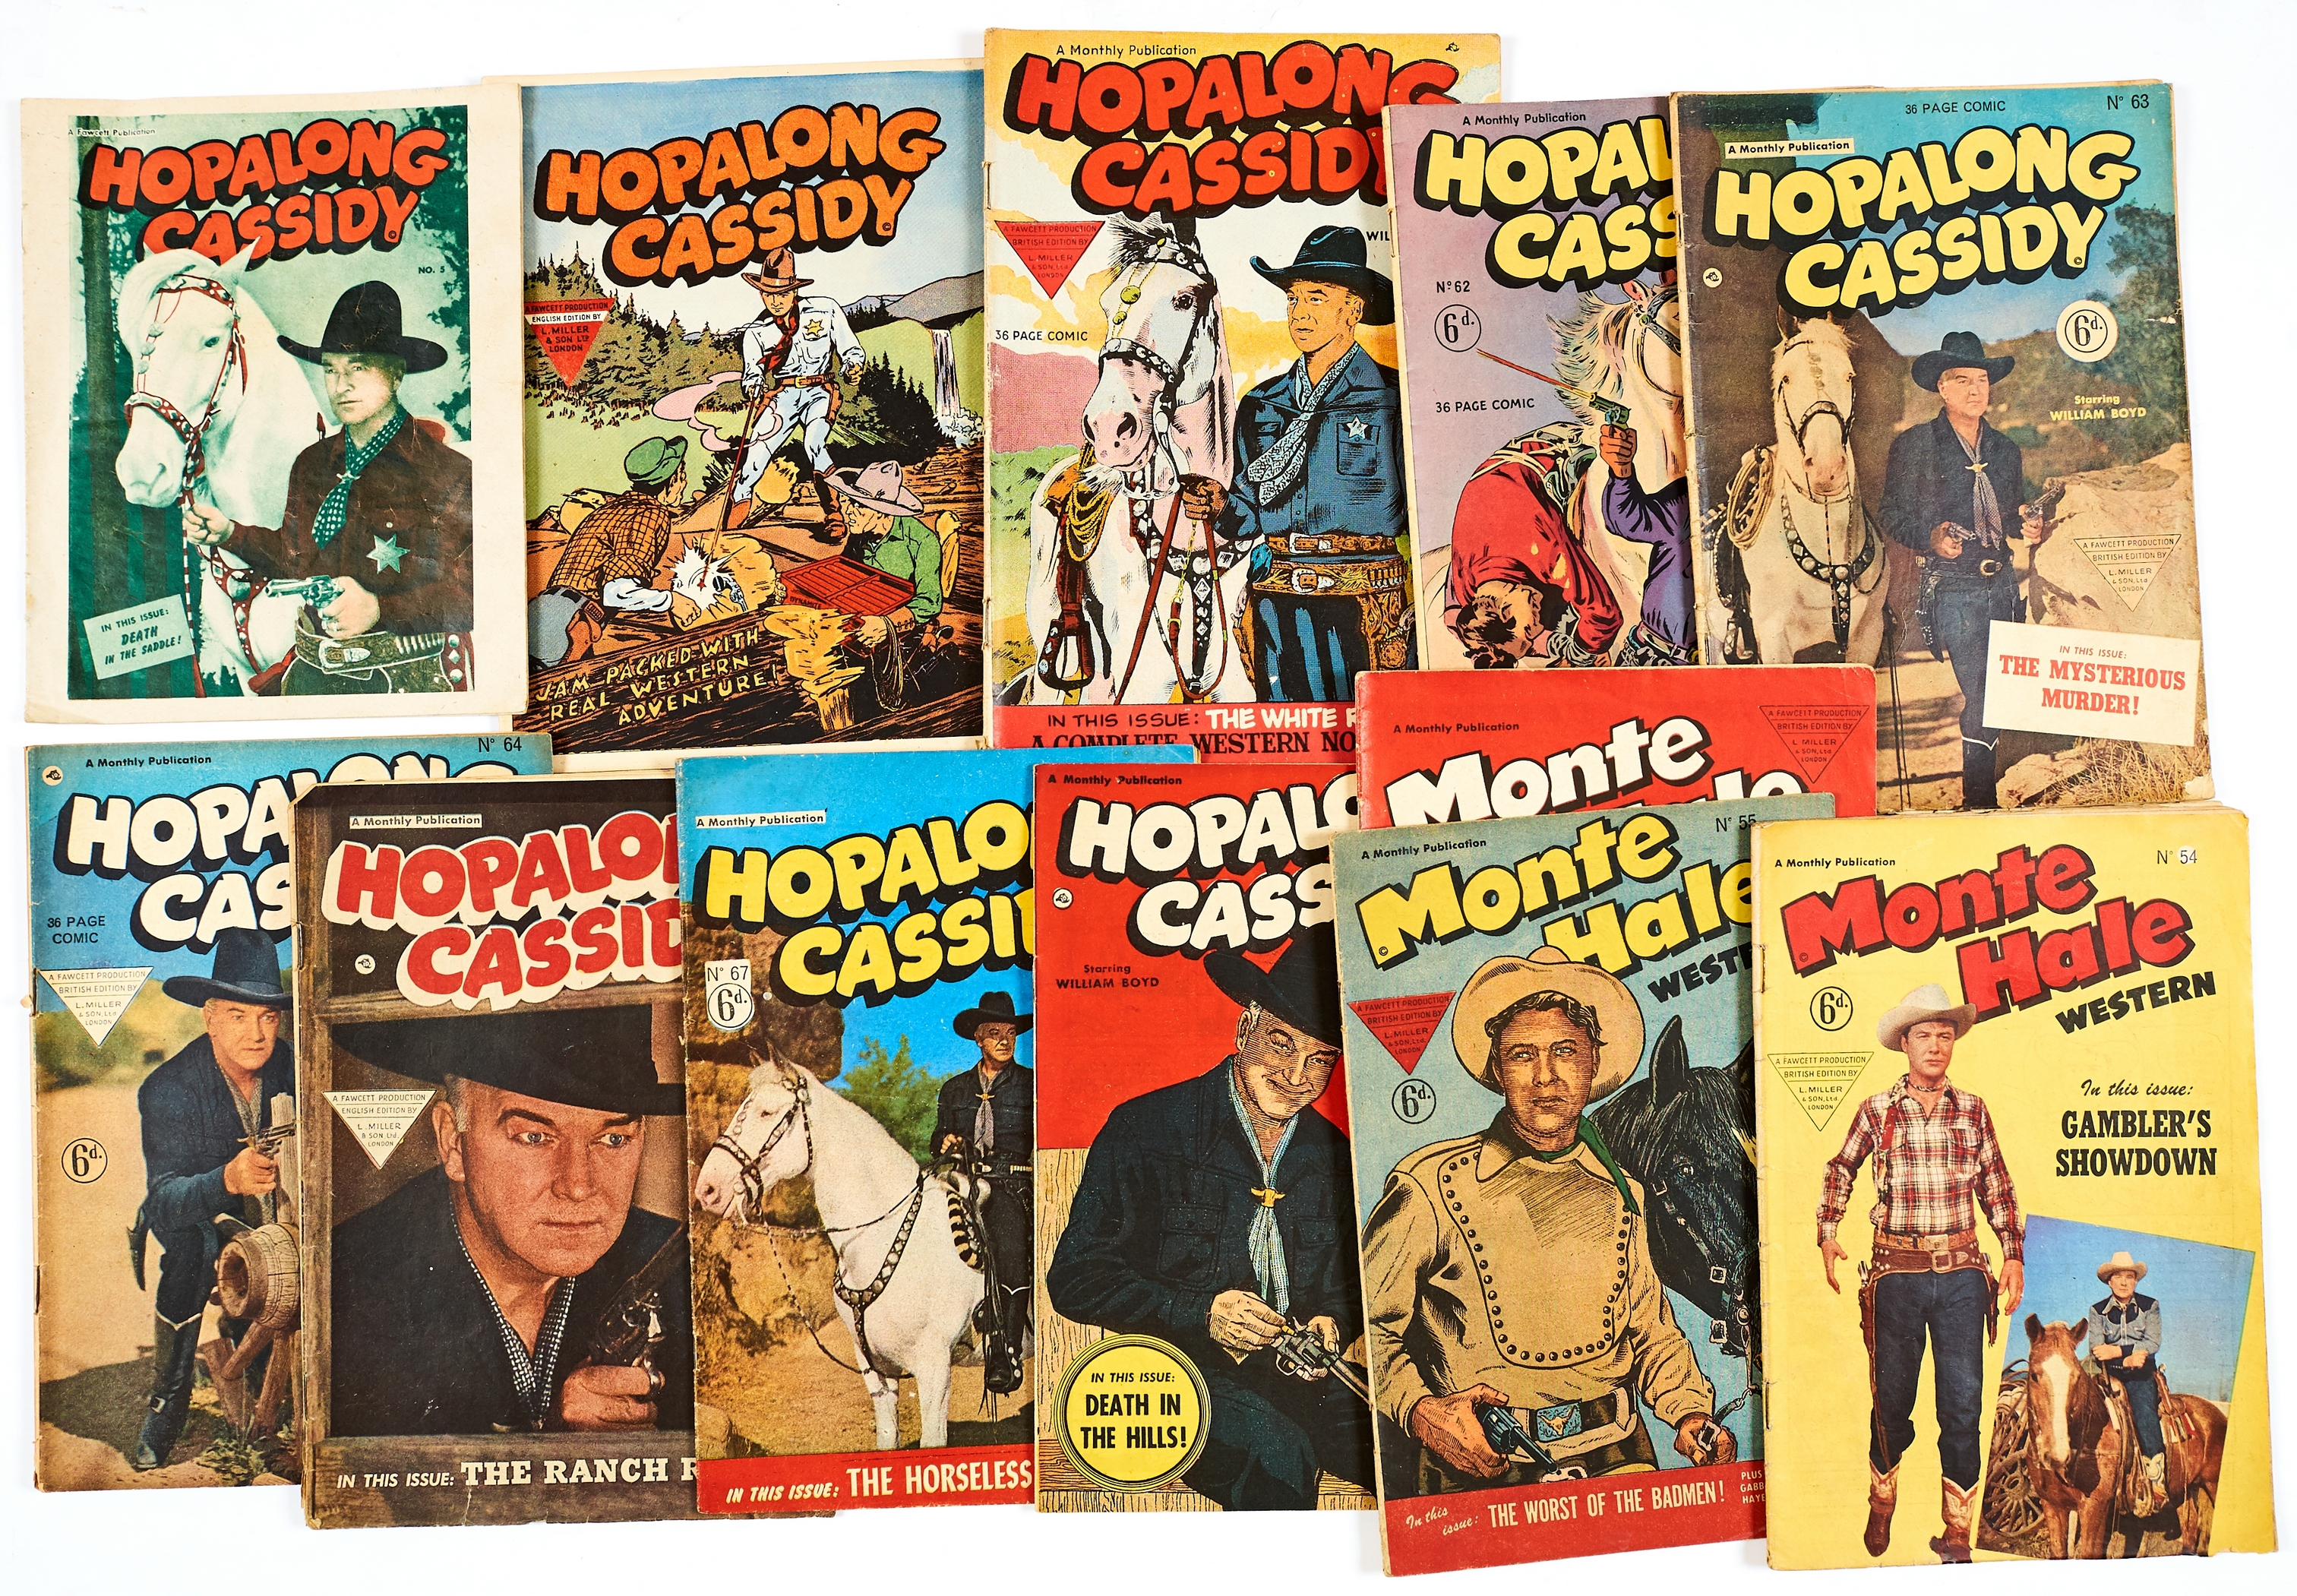 Lot 53 - Hopalong Cassidy (1950s L. Miller) 5, n.n., (these two are scarce photogravure pilot issues), 61-64,